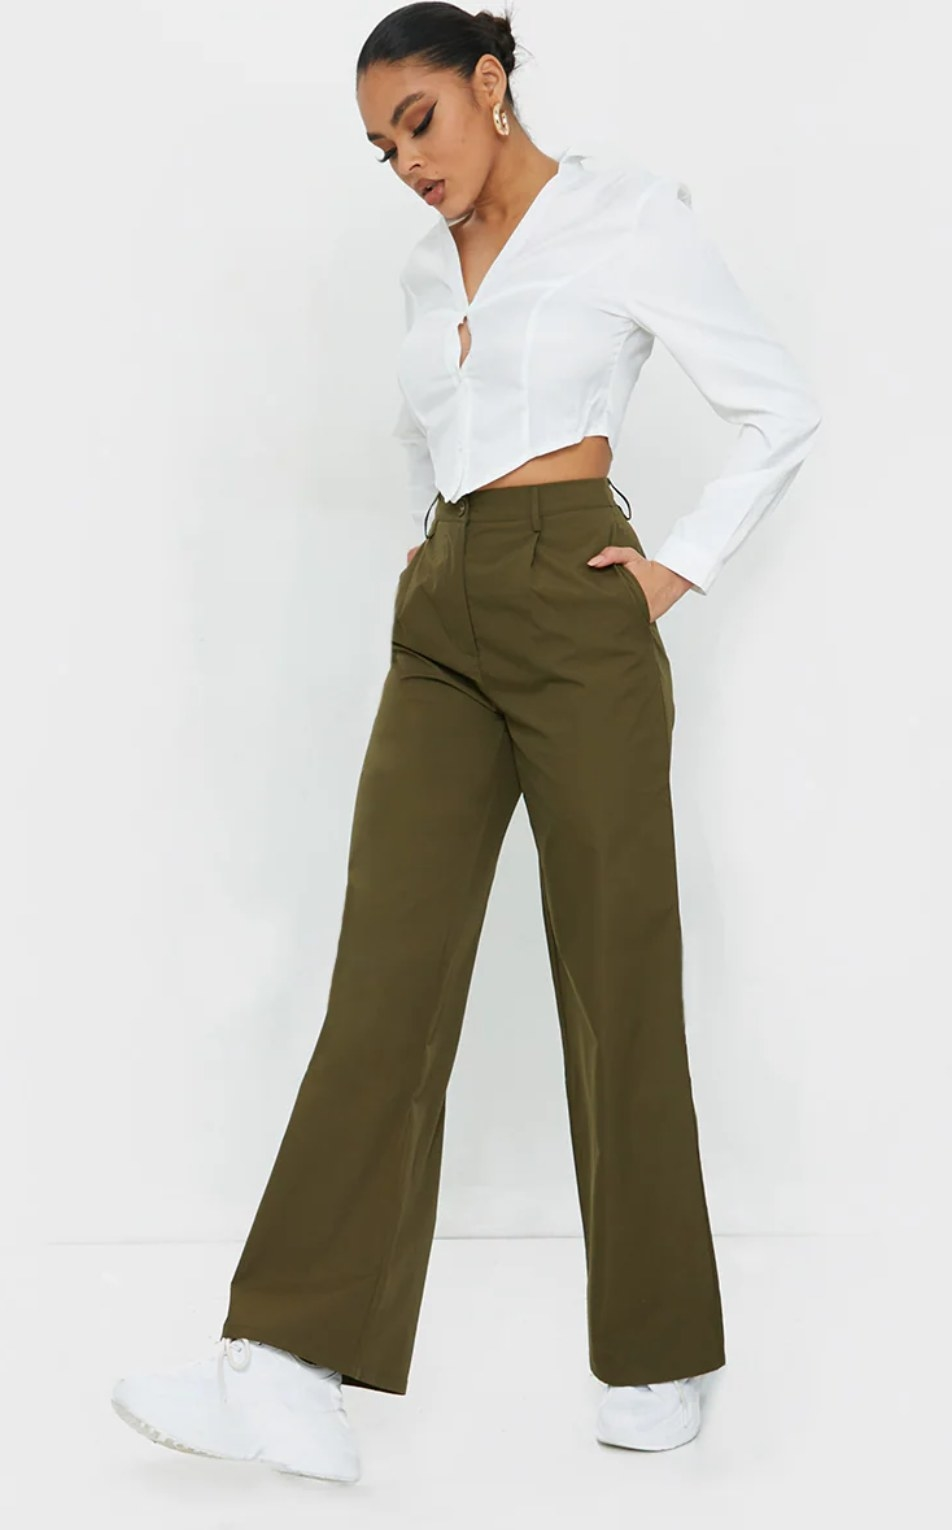 model wearing the green pants with white sneakers and a white top